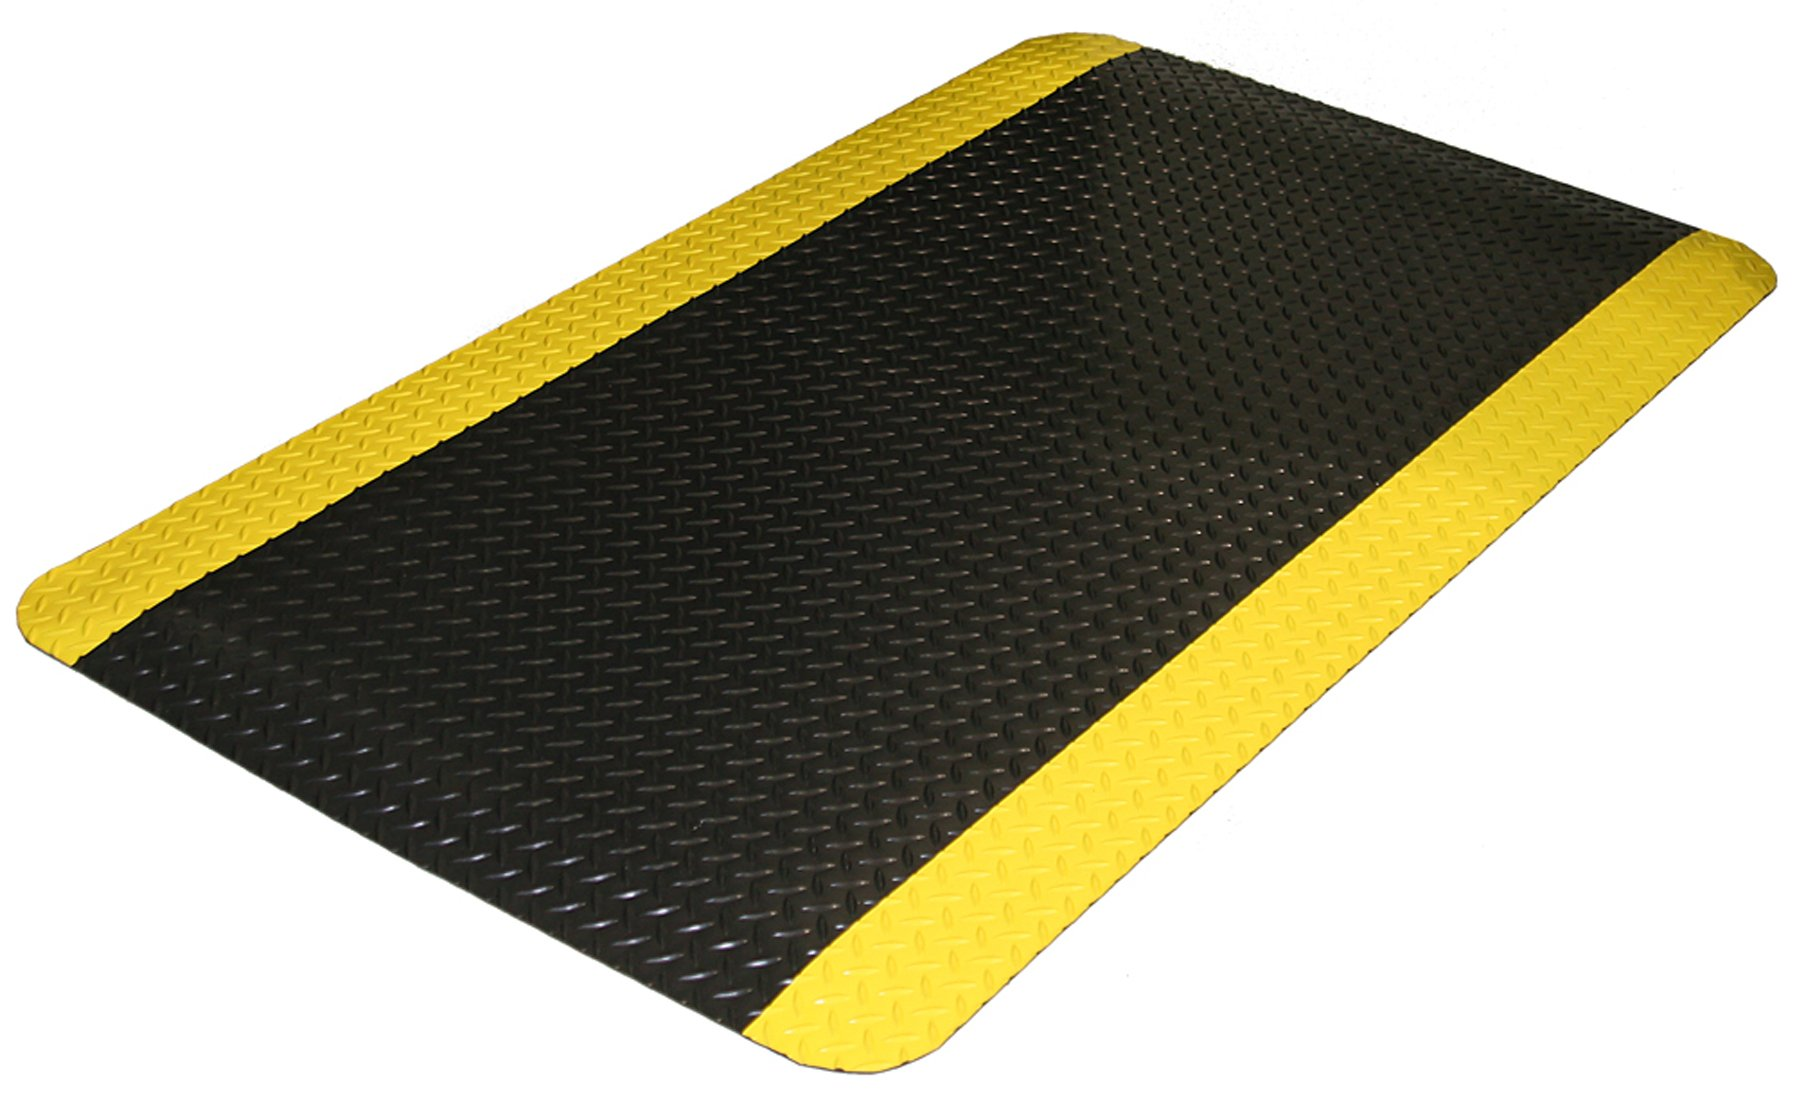 Durable Vinyl Heavy Duty Diamond-DEK Sponge Industrial Anti-Fatigue Floor Mat, 2' x 3', Black with Yellow Border by Durable Corporation